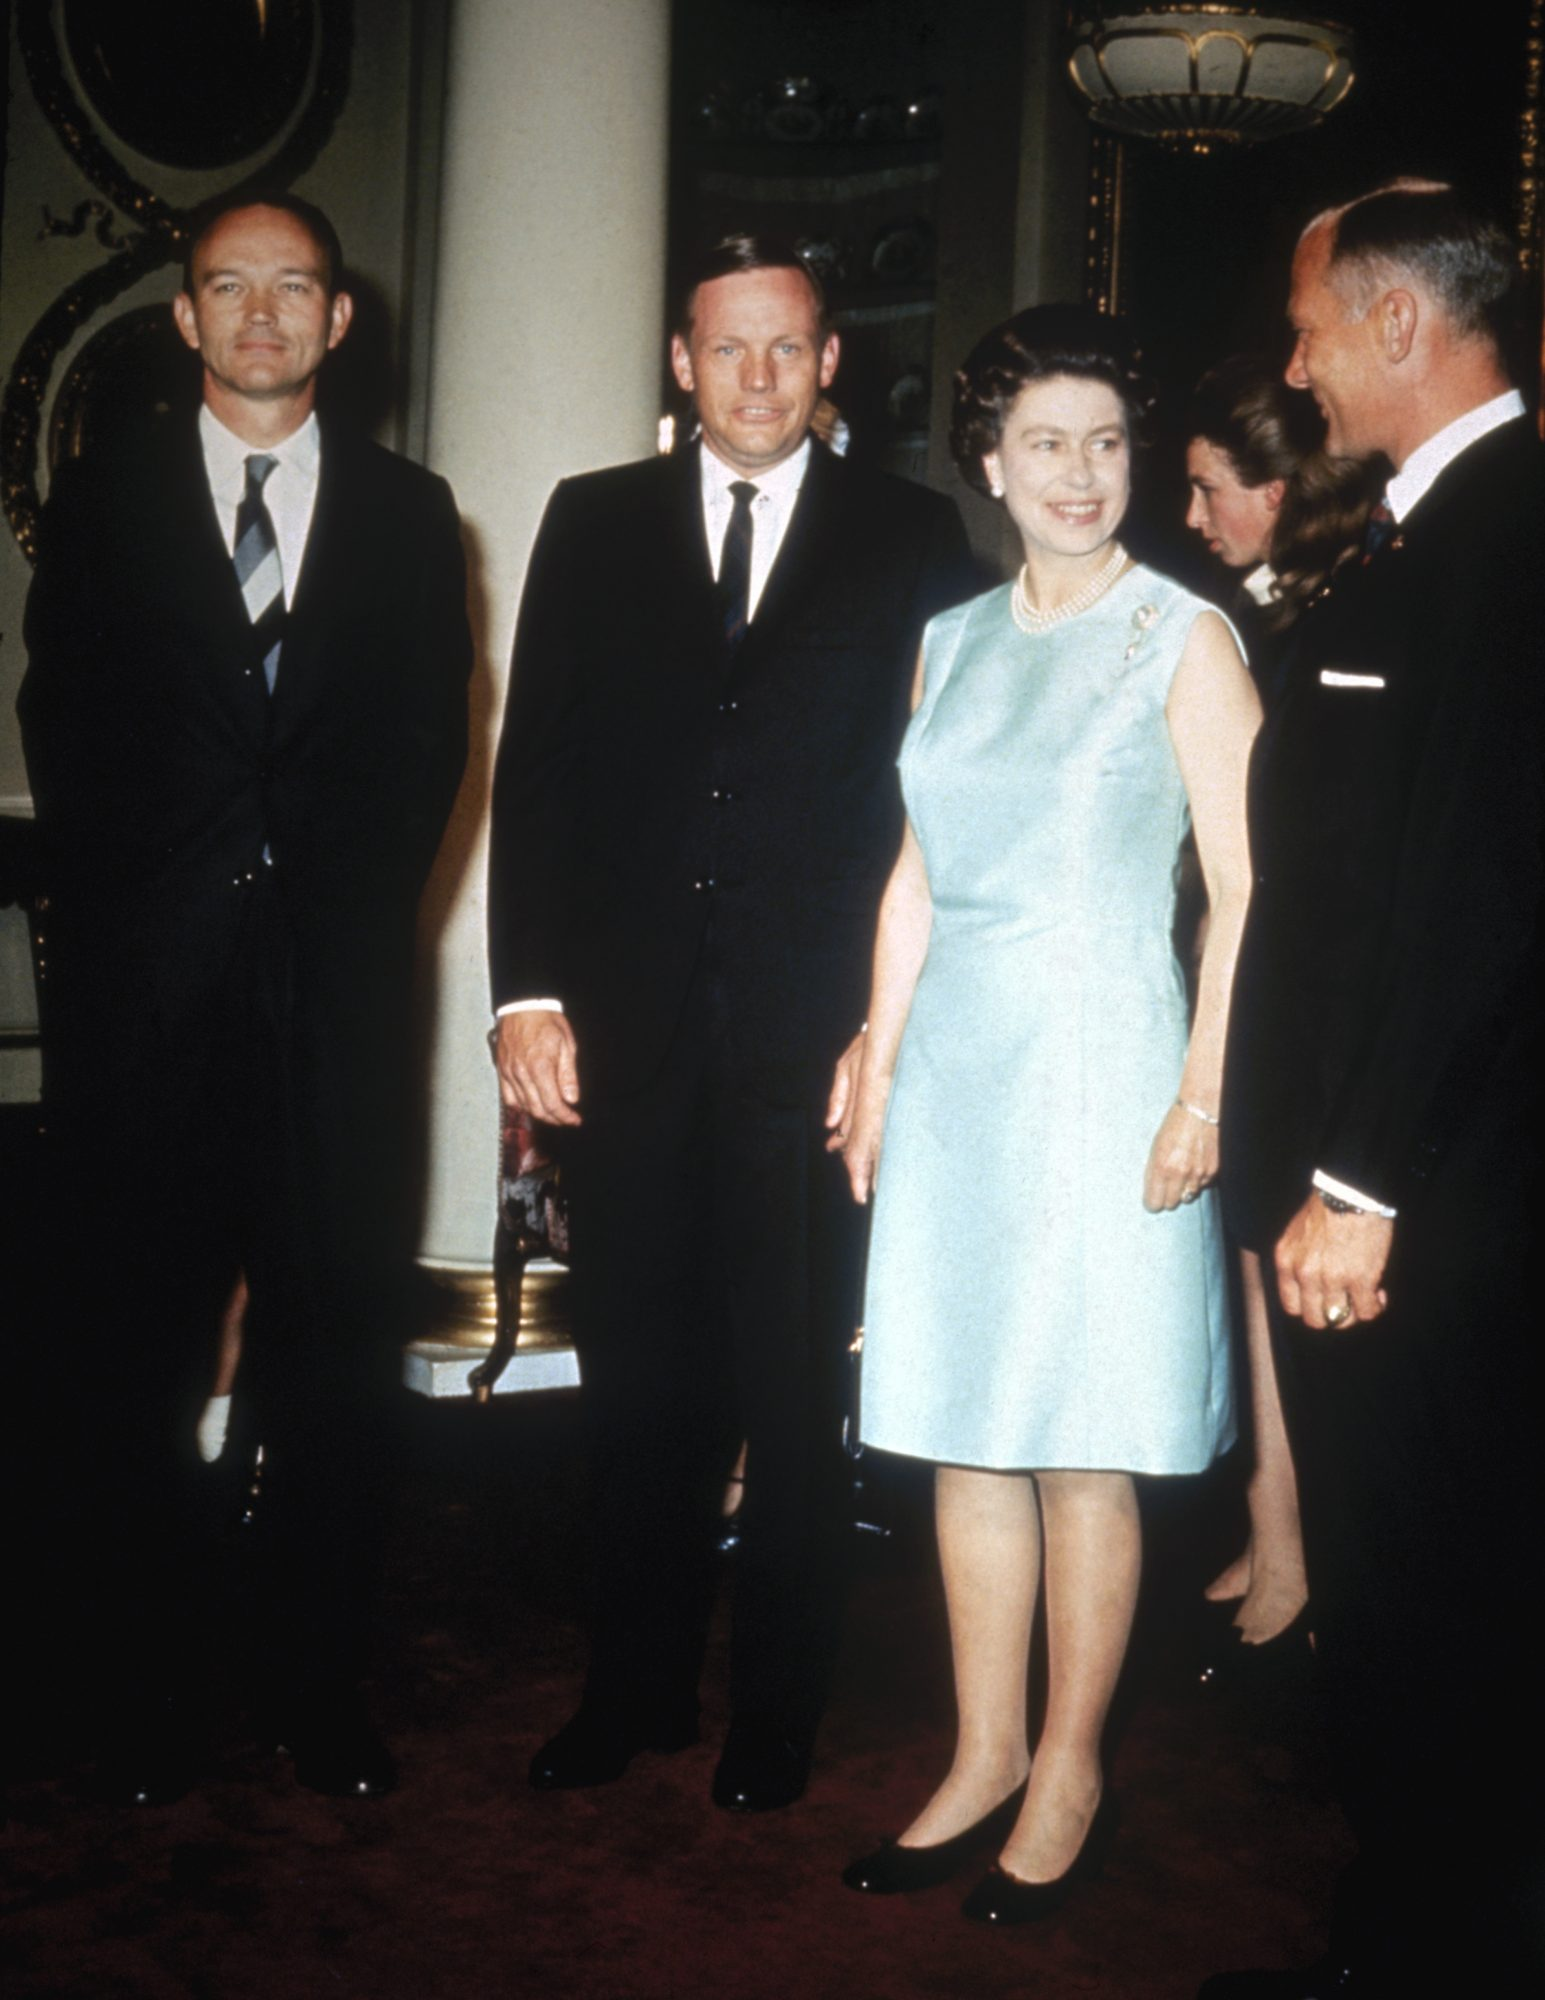 Queen Elizabeth II and Neil Armstrong